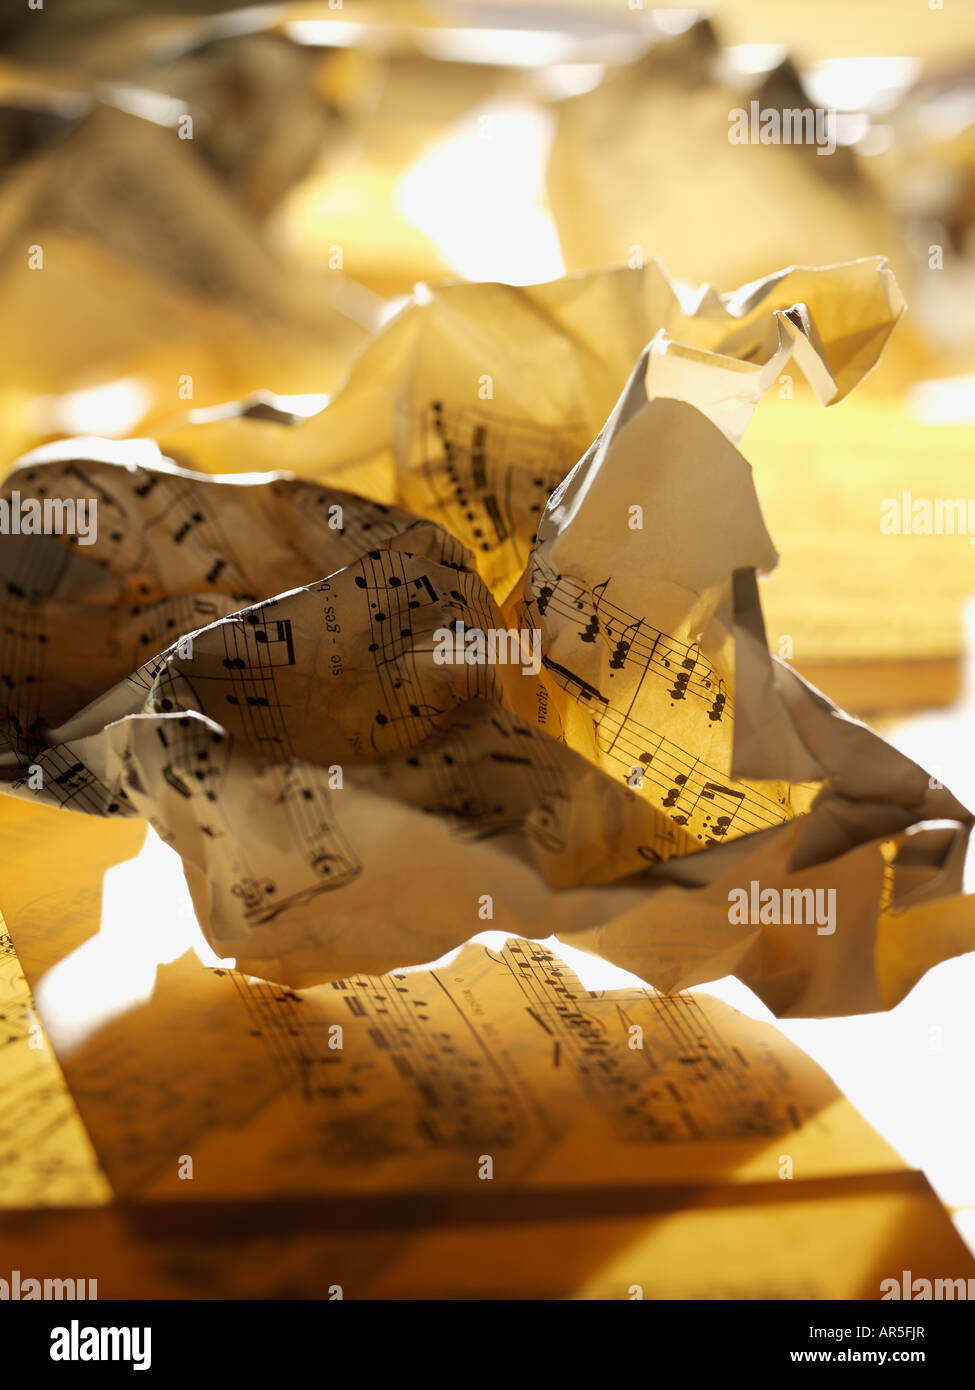 Crumpled sheet music - Stock Image